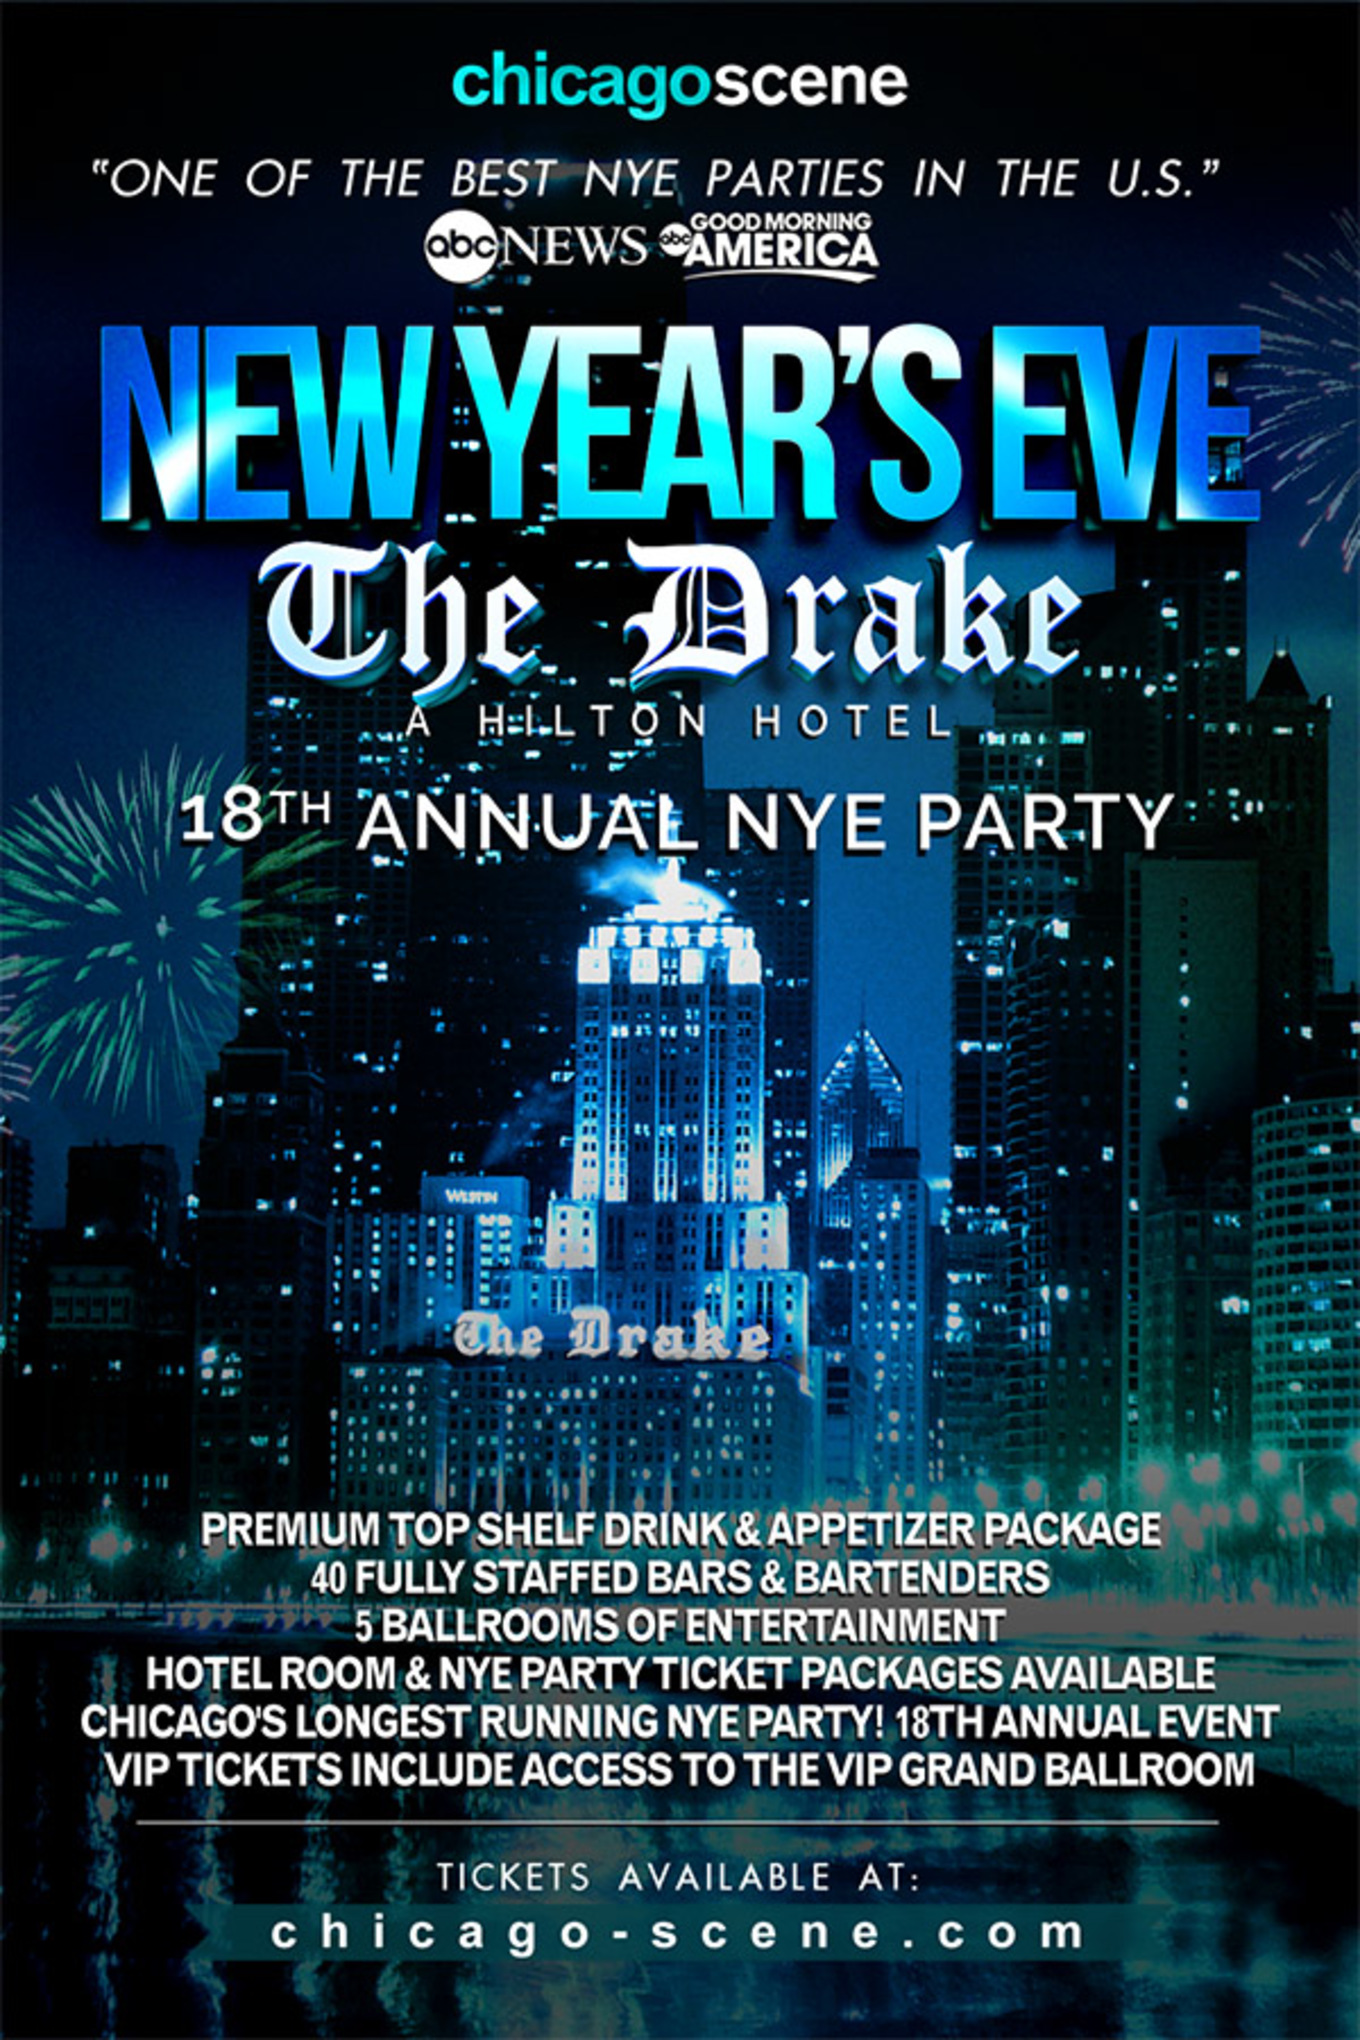 New years eve party the drake hotel 2018 chicago scene new years eve party the drake hotel 2018 chicago scene magazine kristyandbryce Images